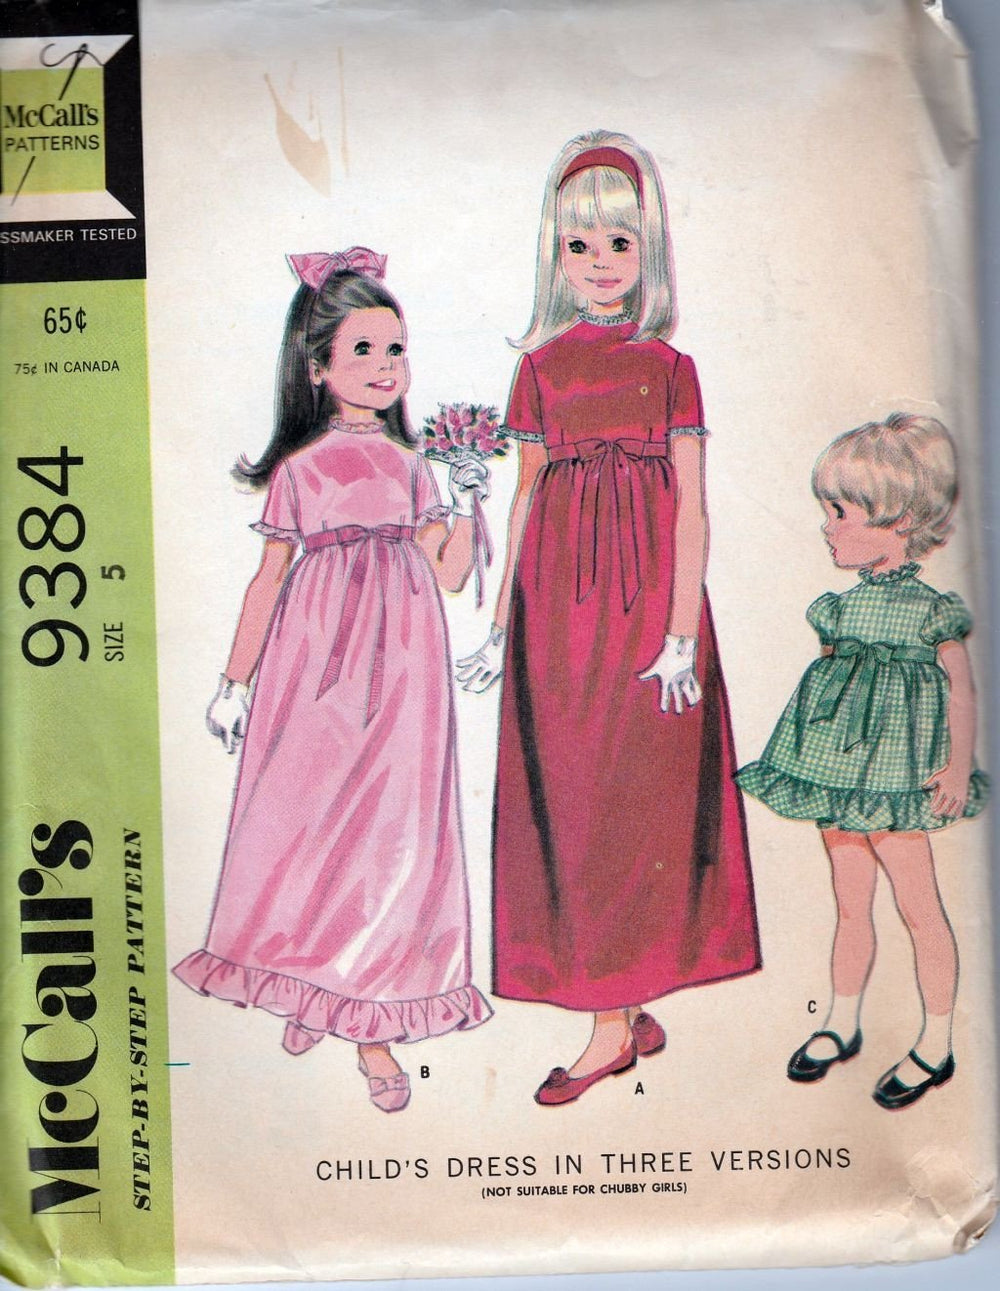 McCall's 9384 Vintage 1960's Sewing Pattern Little Girls Flower Girl Dress Gown - VintageStitching - Vintage Sewing Patterns